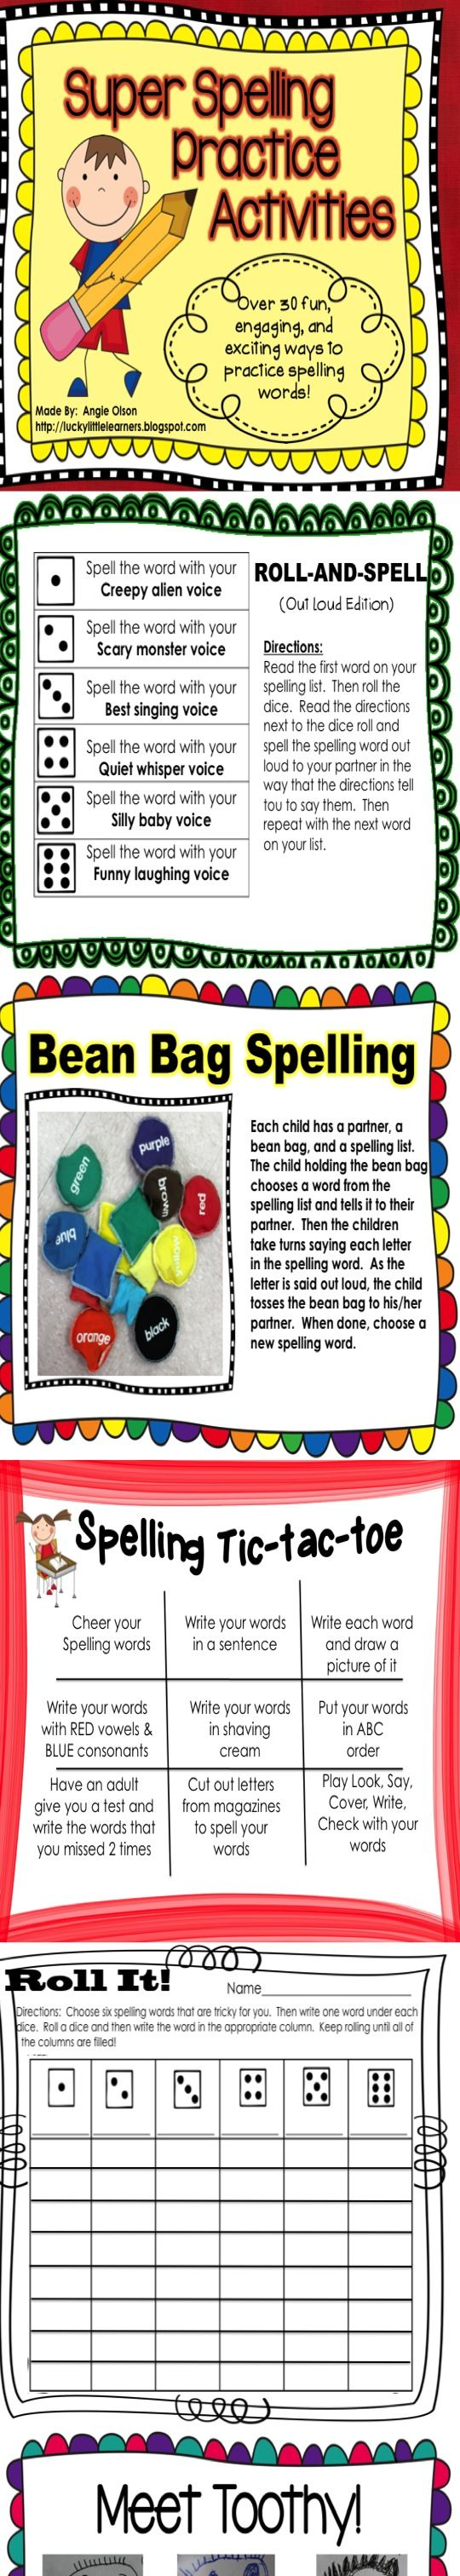 My kids love these spelling activities!  This product contains over 30 different ways to practice spelling in a fun, engaging, and effective way.  I have also included 36 different homework activities to practice spelling words!